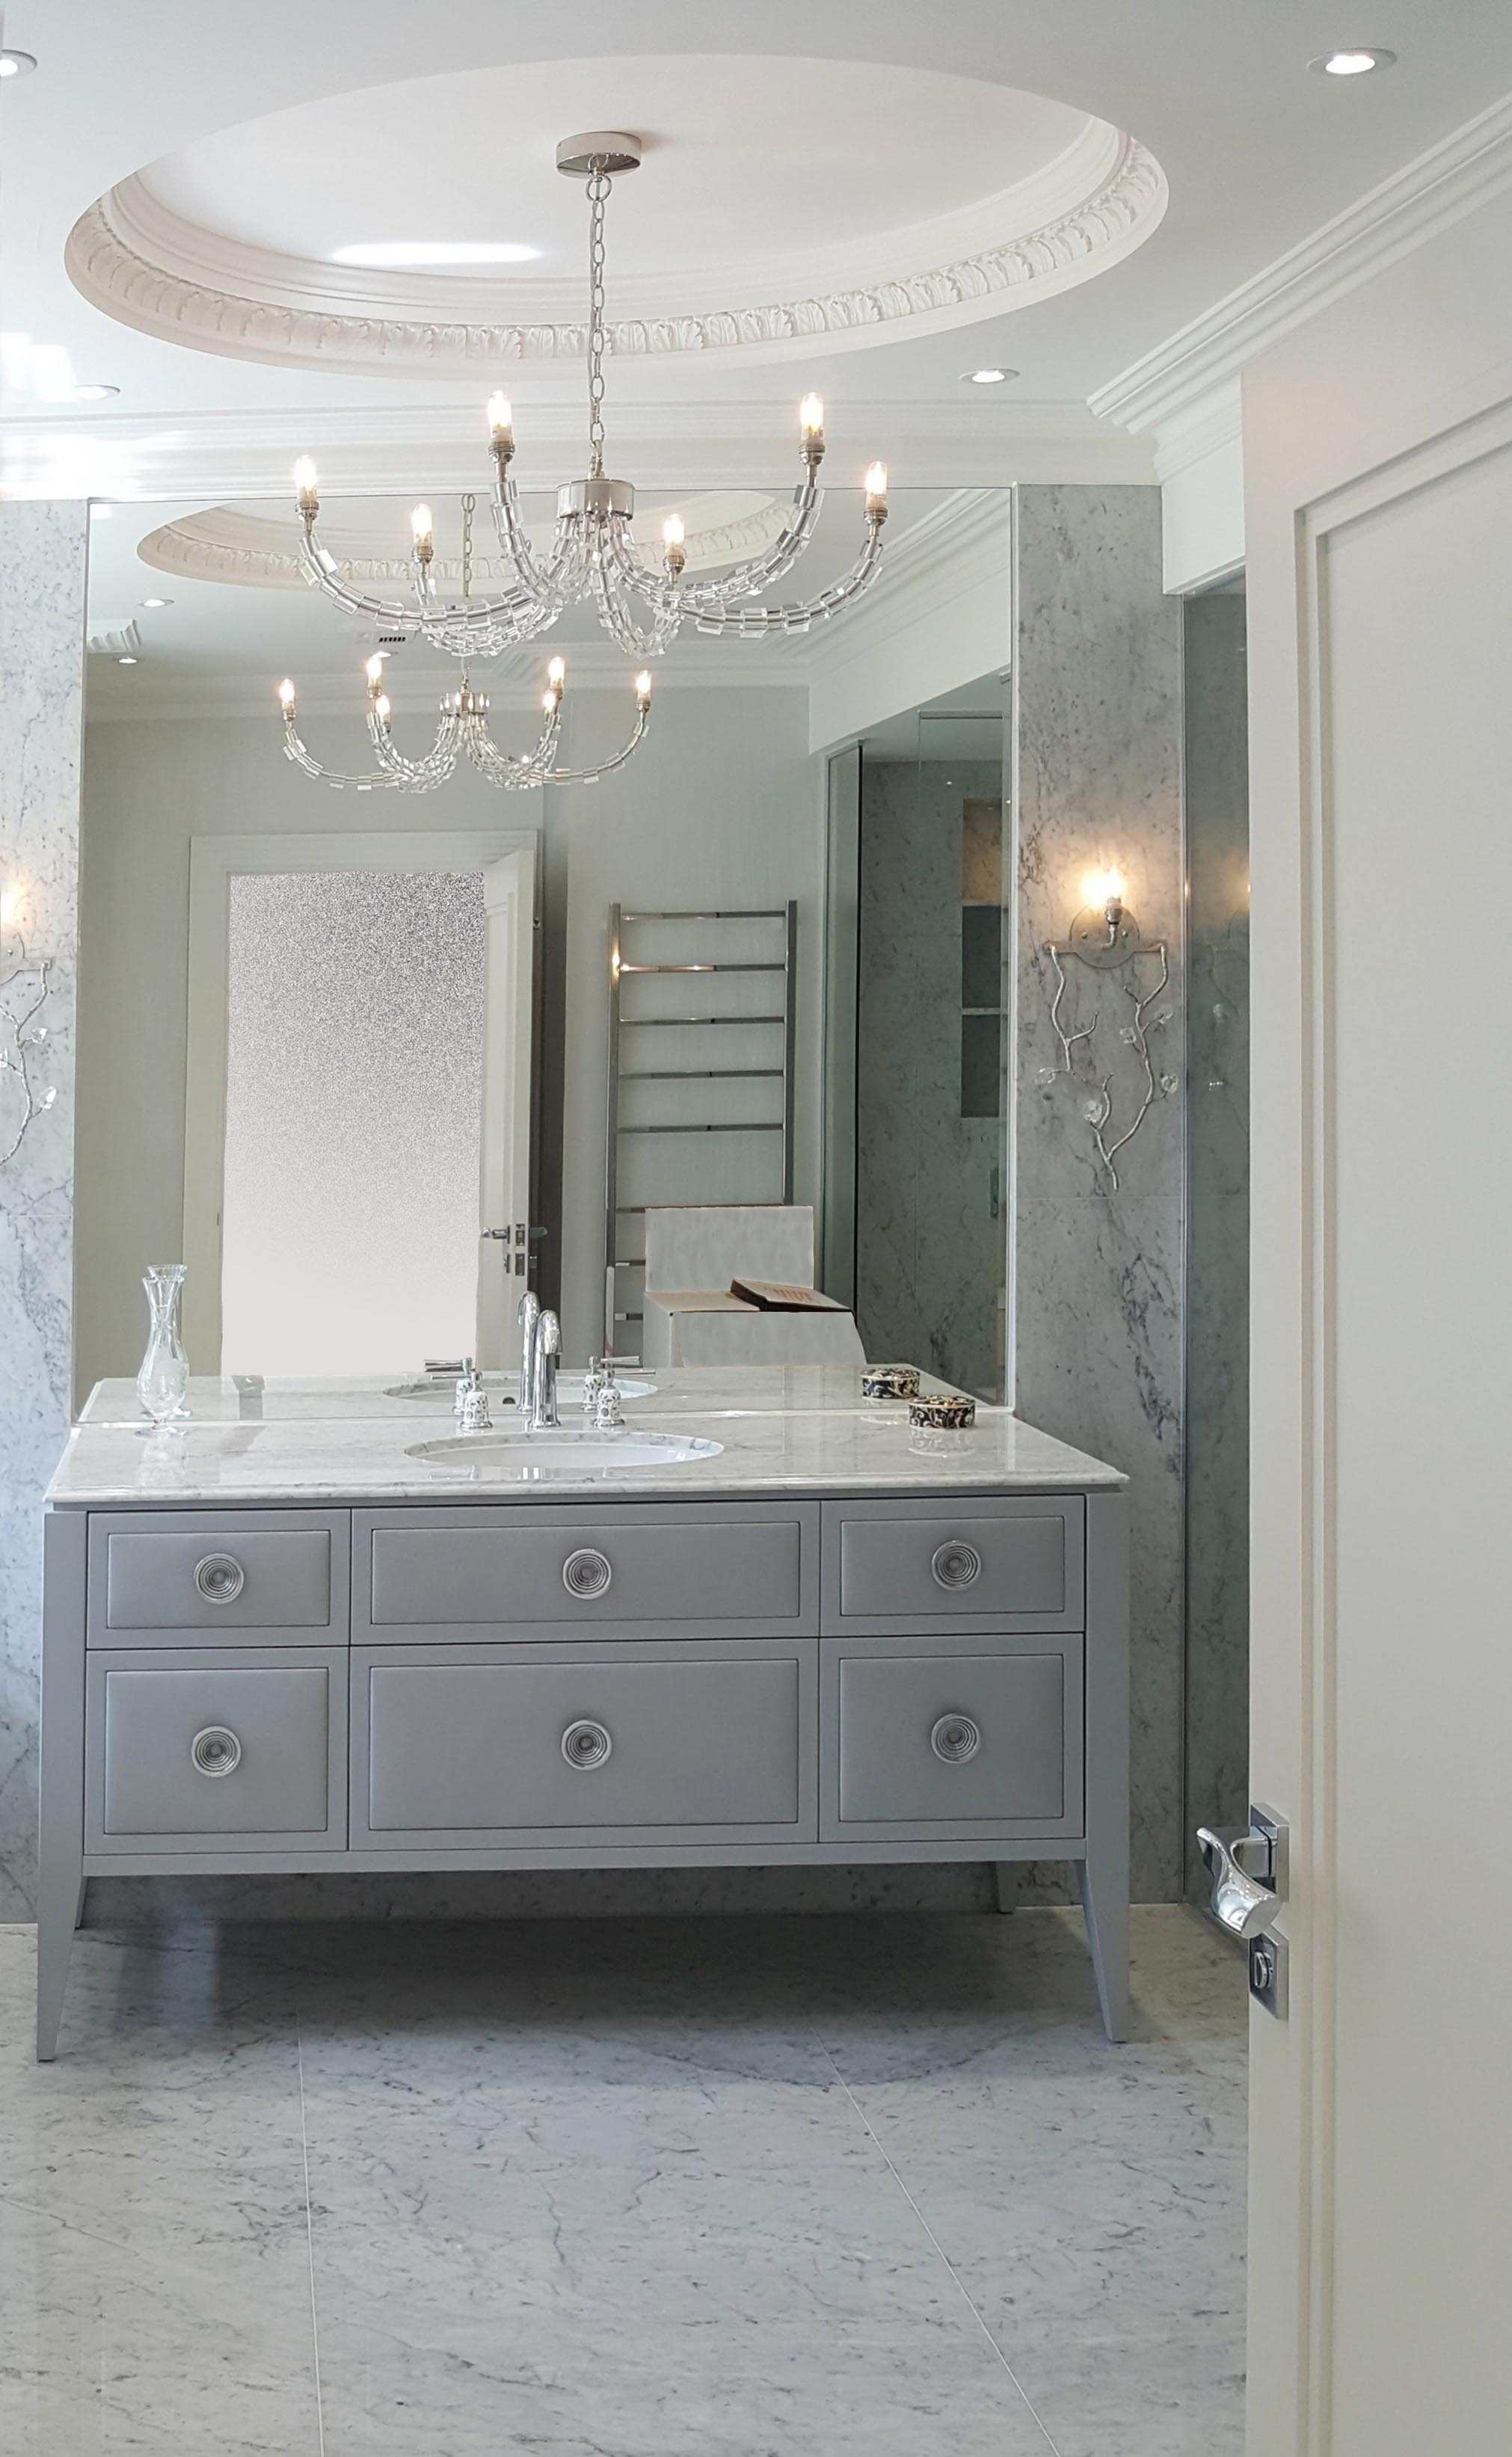 marble top vanity unit with drawers.